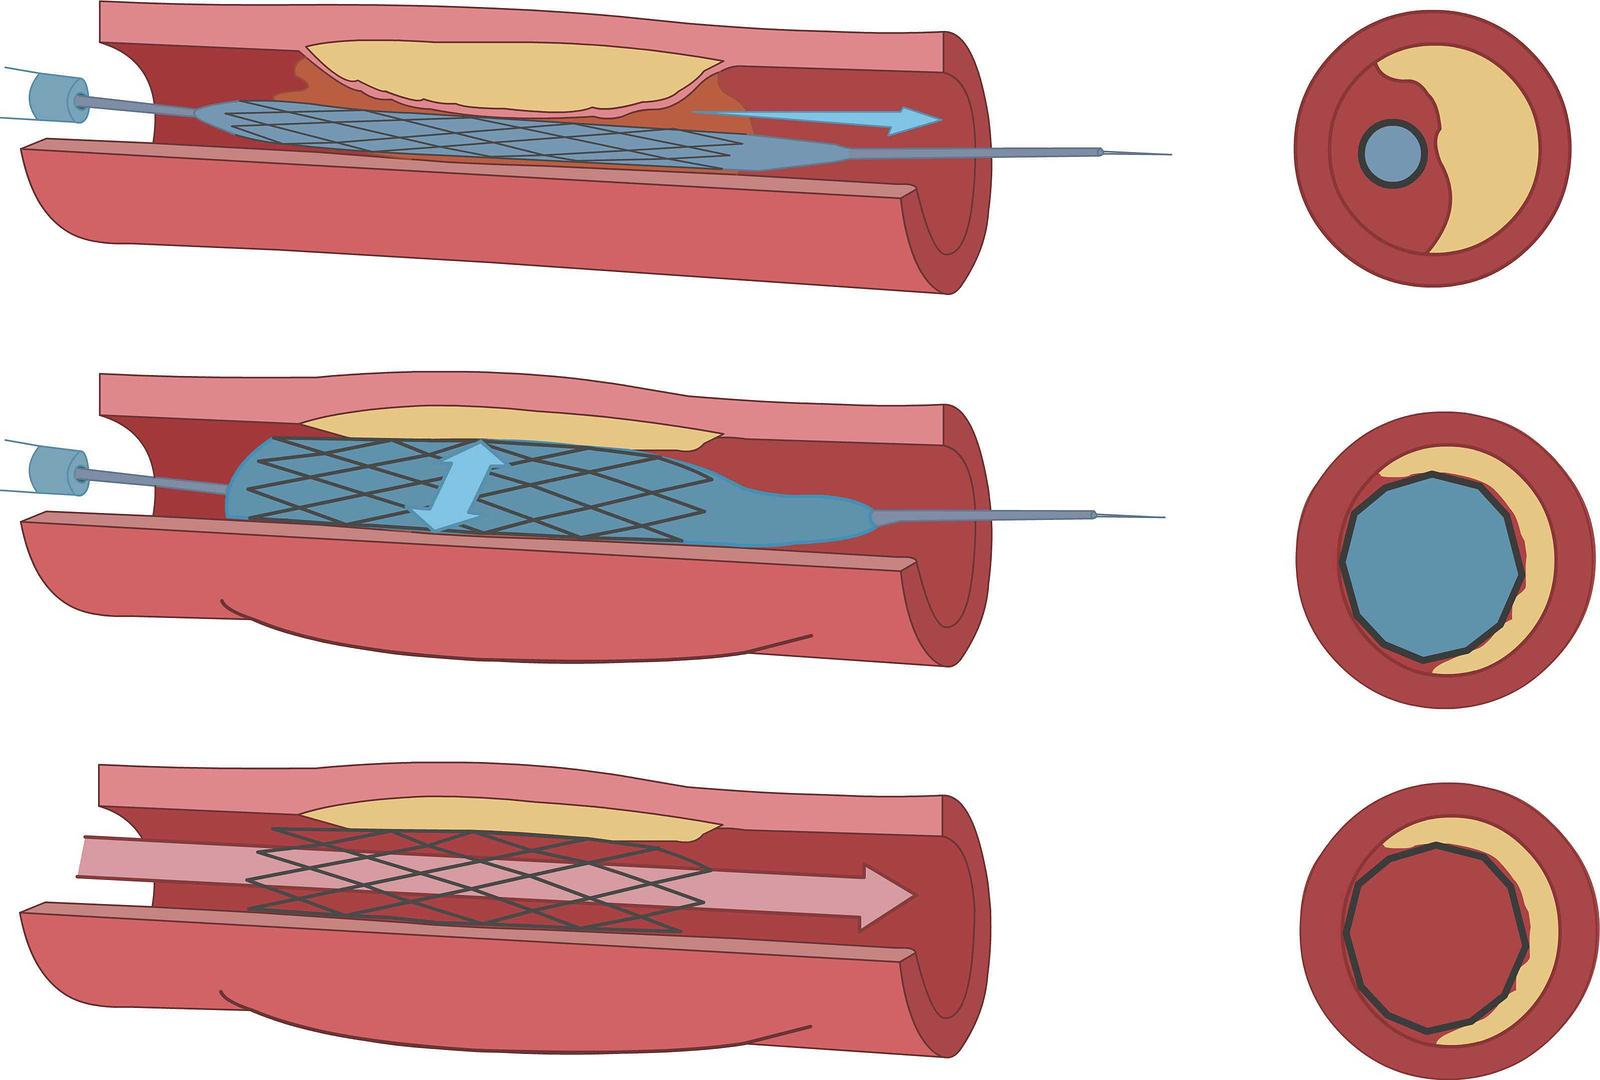 Endovascular Angioplasty and Stent Example Image - Tulsa Cardiovascular